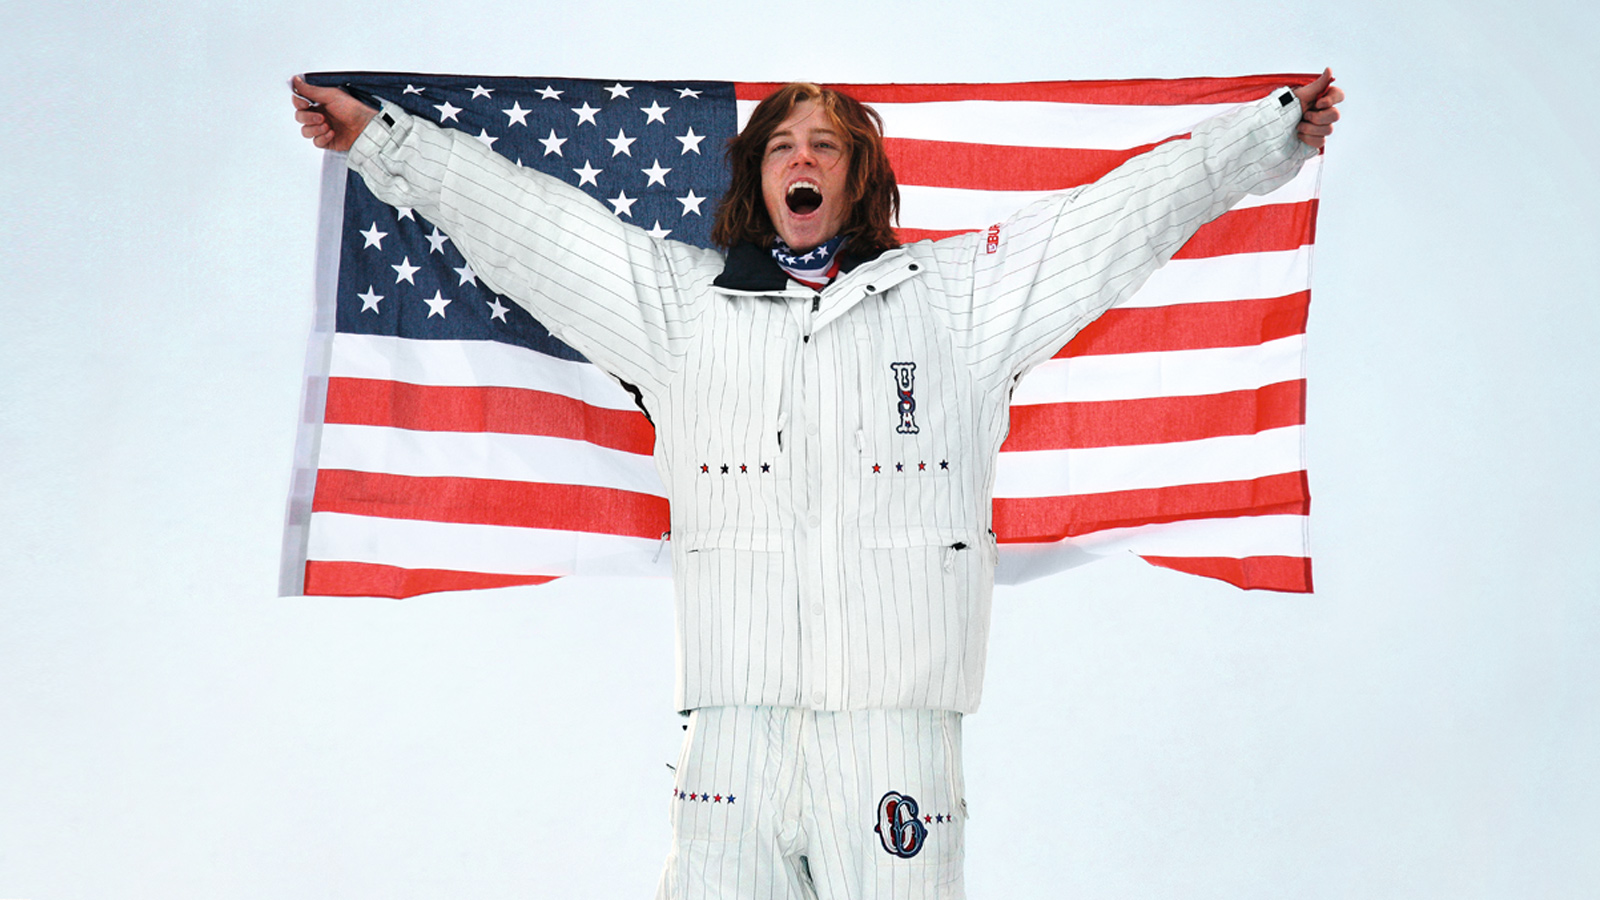 Snowboarder Shaun White hold an american flag and celebrates on the podium of 2006 Turin Winter Olympics